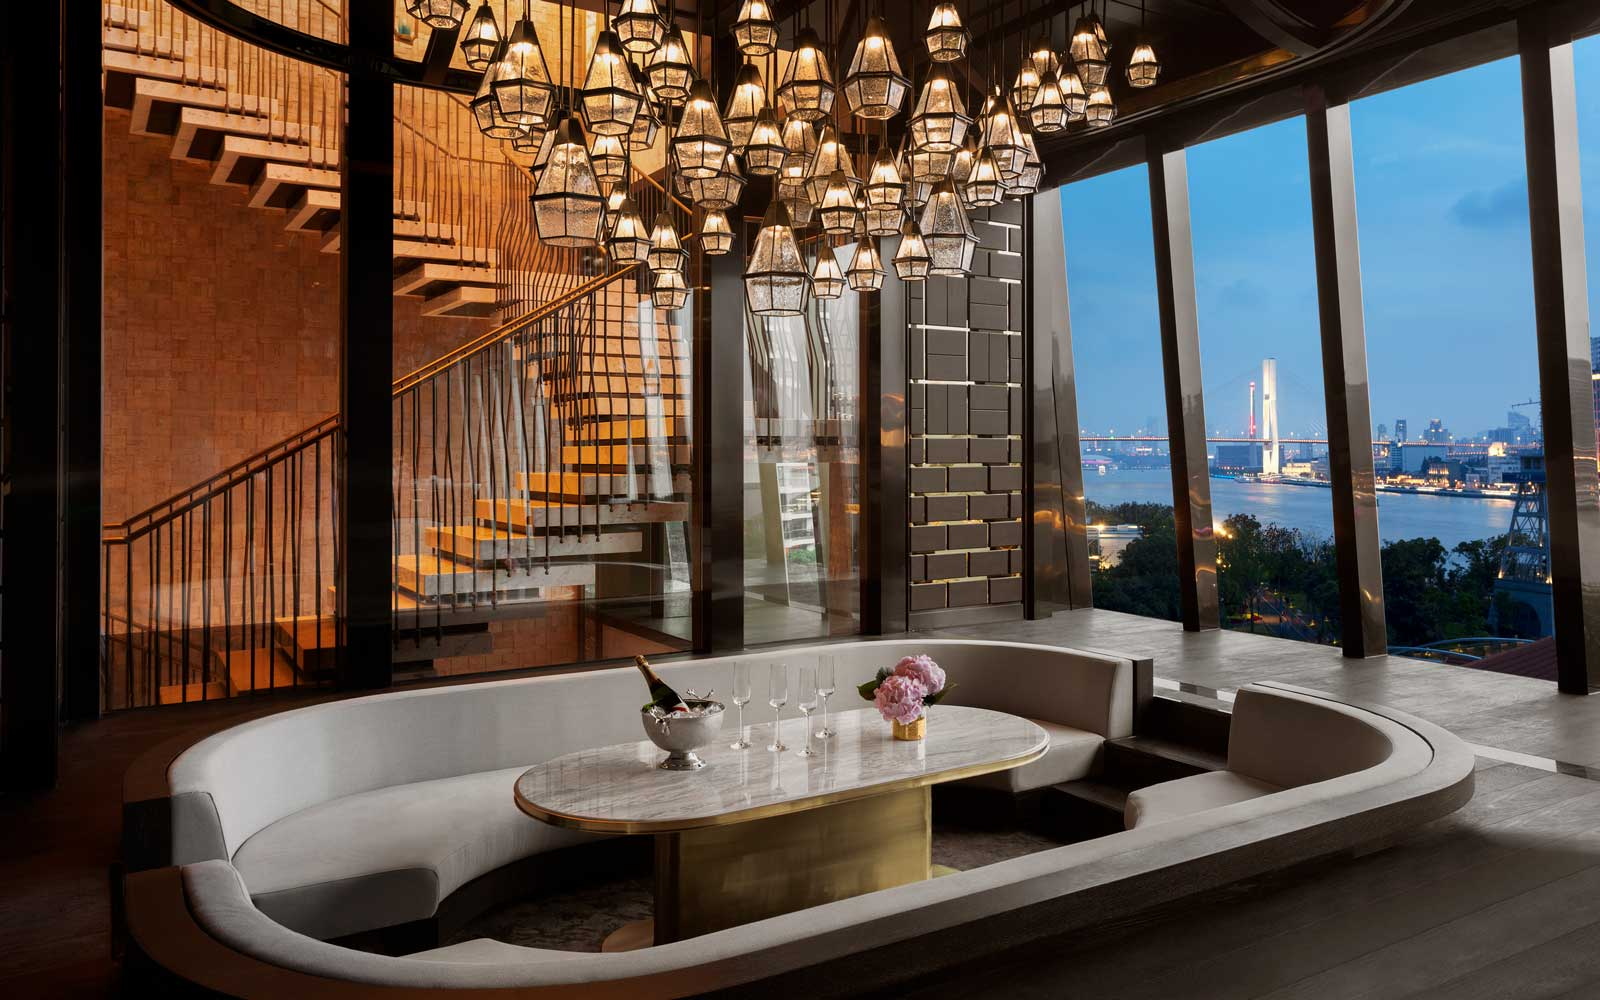 High-end hotel projects, as if it were raining!